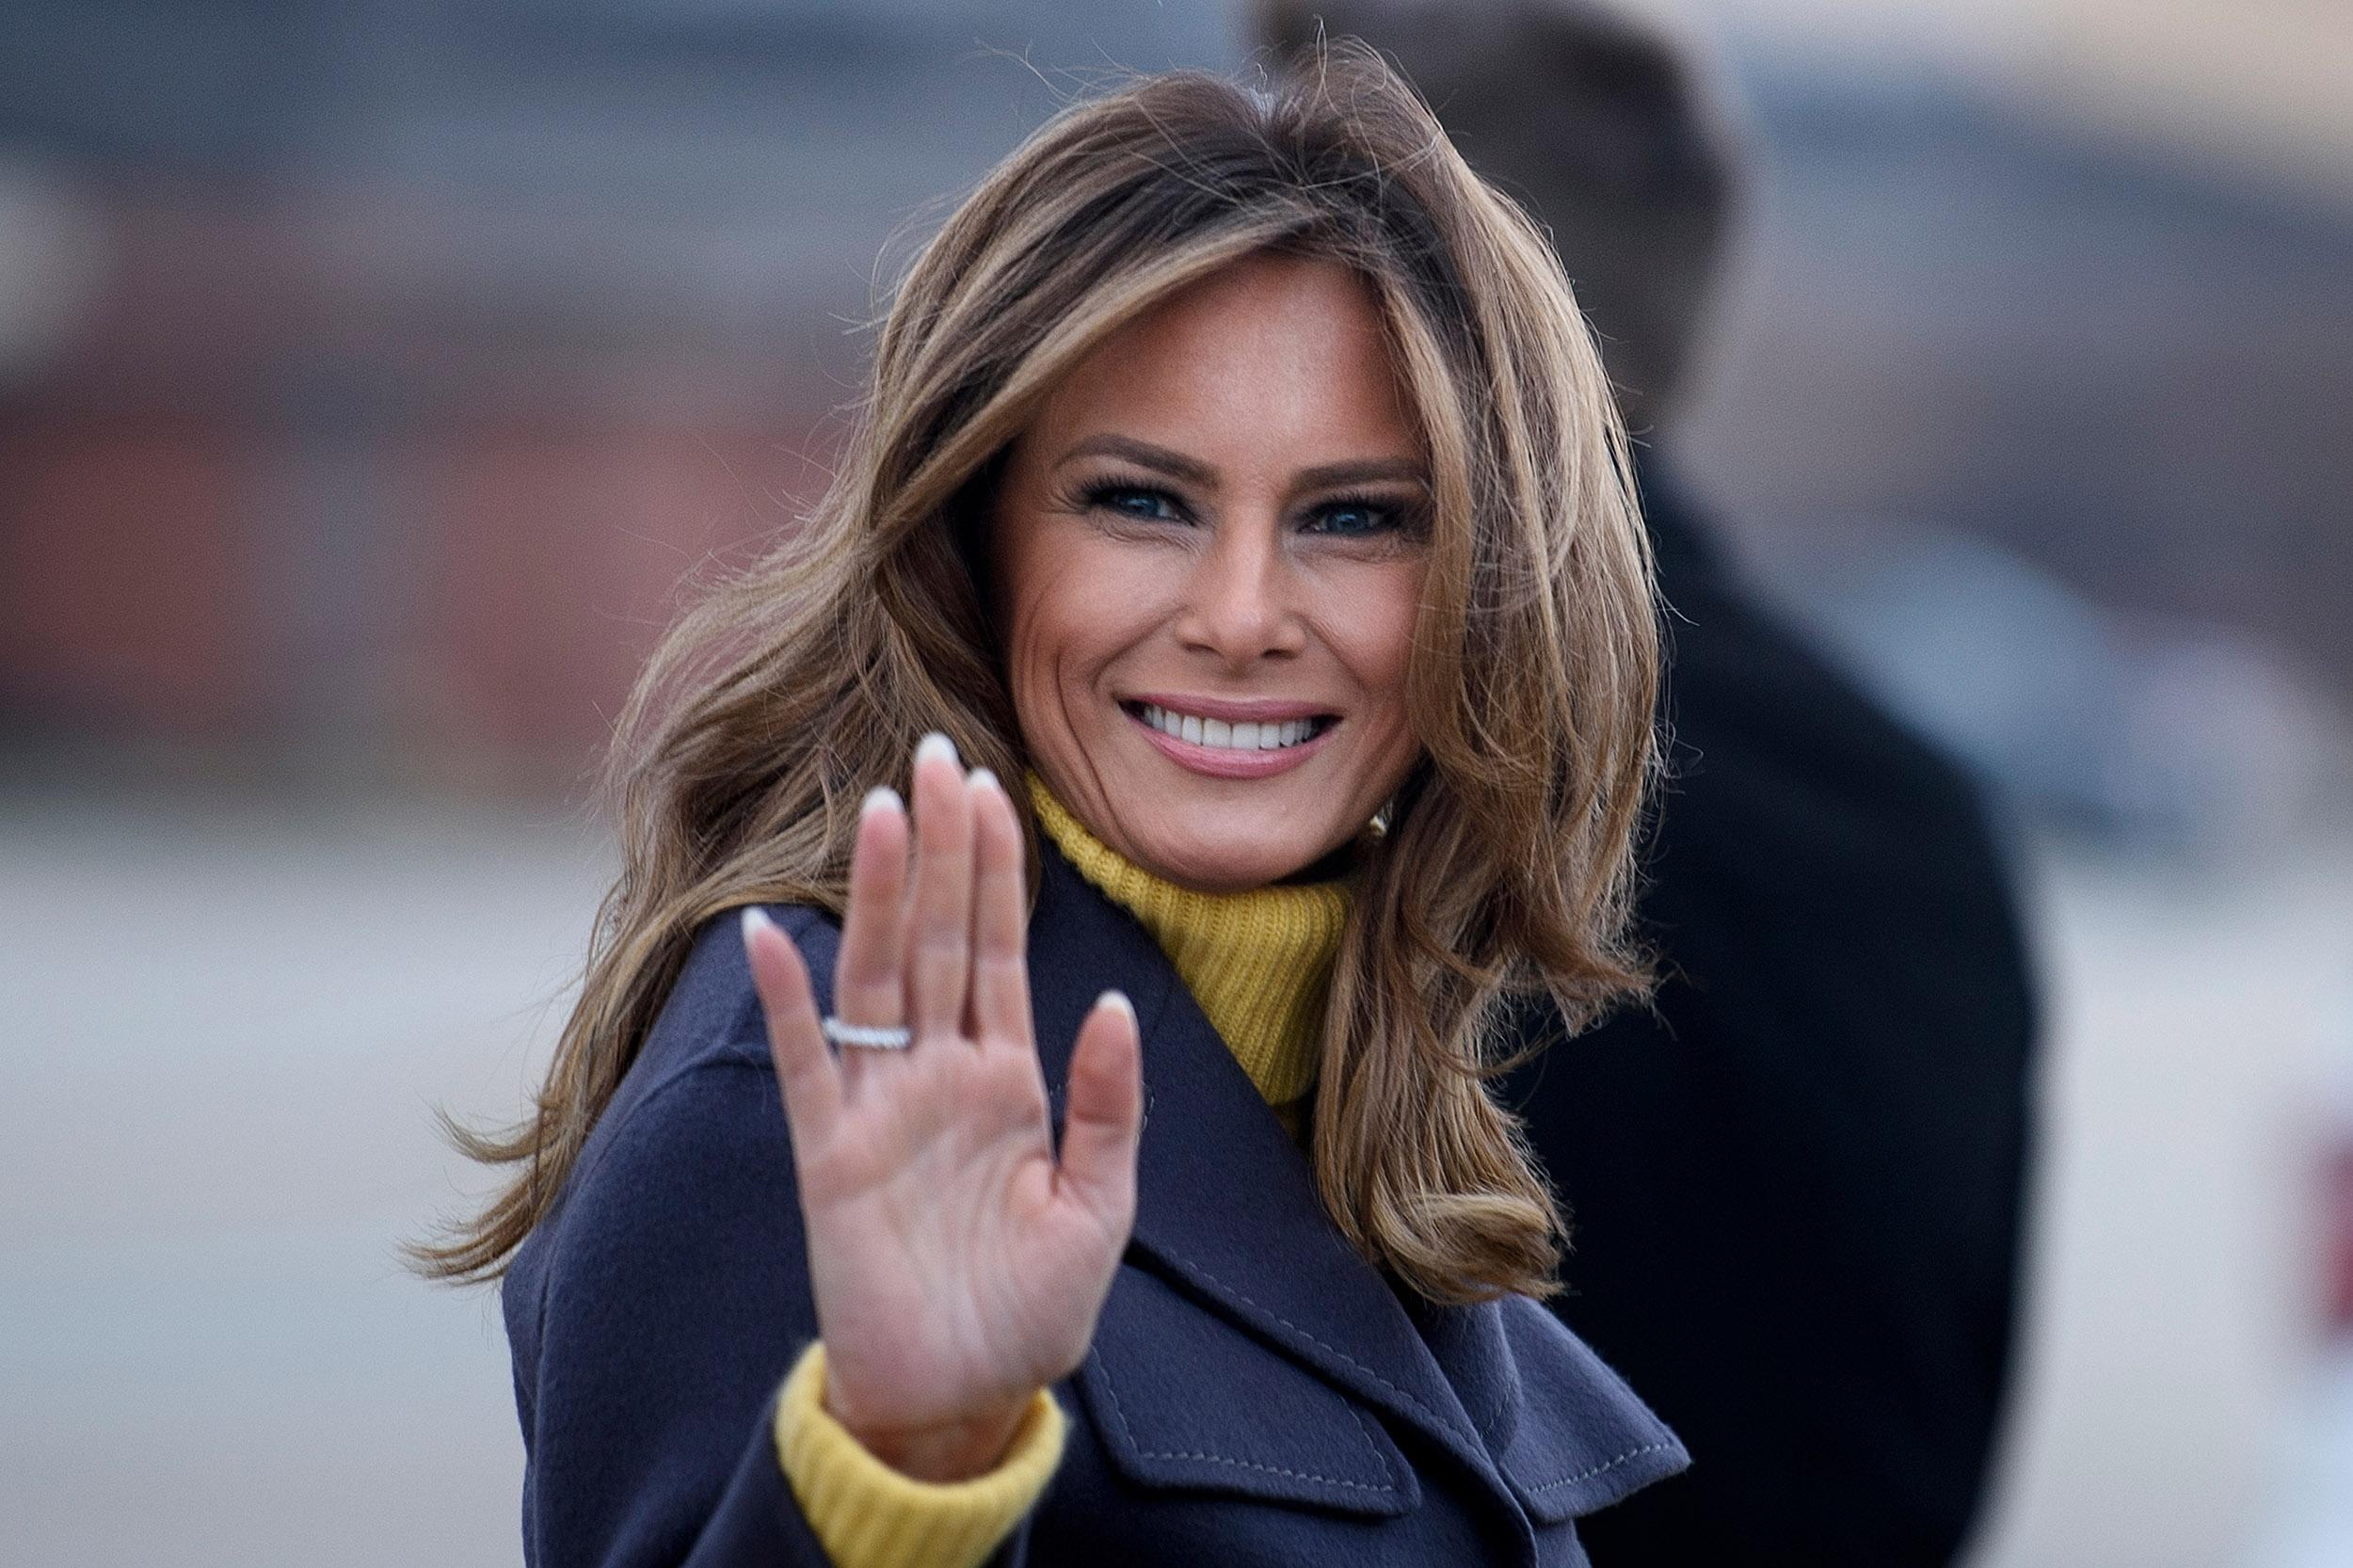 Melania Trump used newfound leverage to redo prenup after election win, new book says